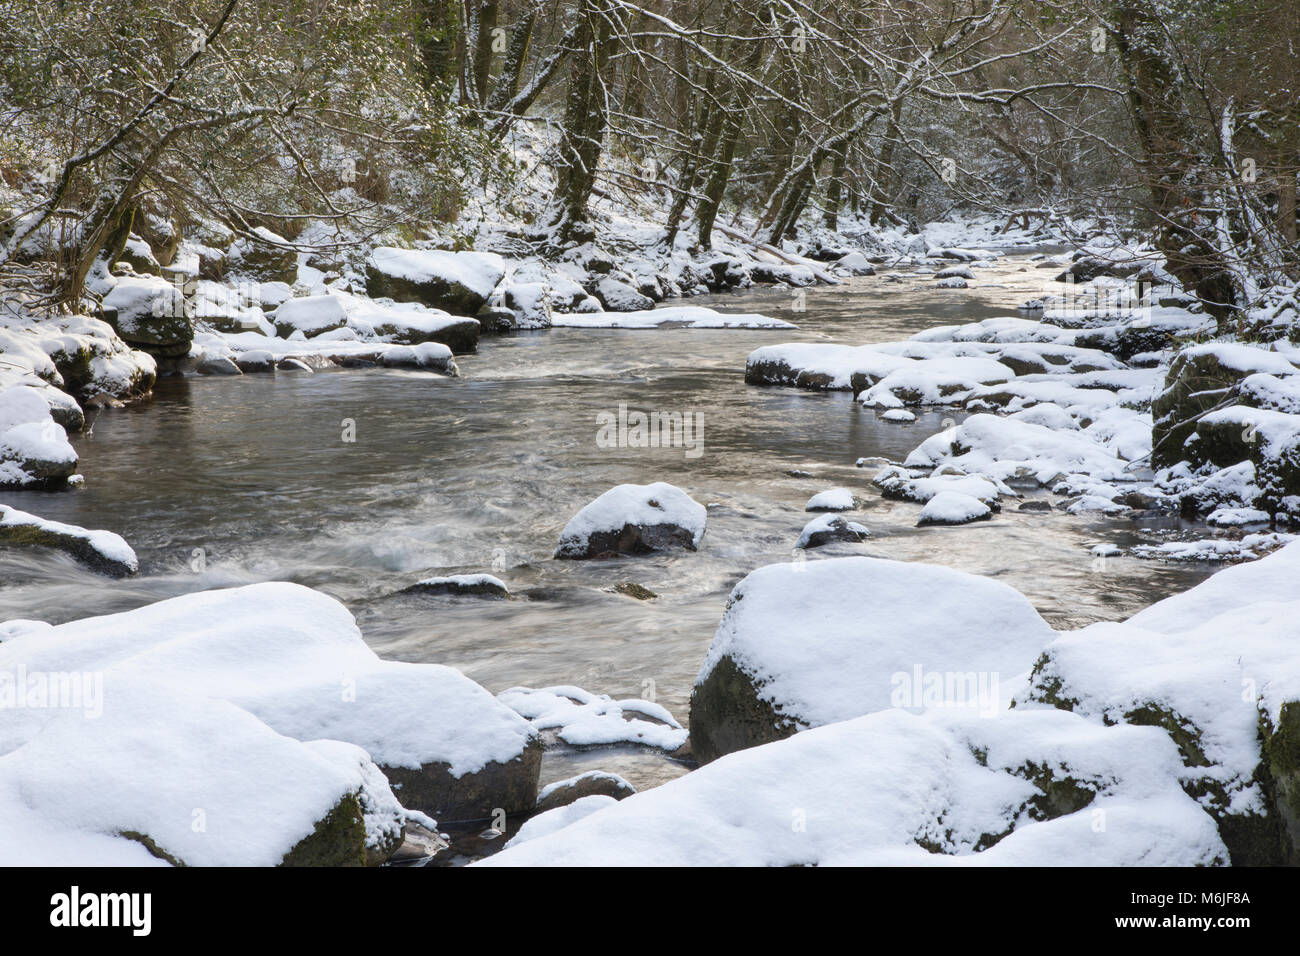 Long Exposure of water flowing down a stream surrounded by snow, River Erme, Dartmoor, Devon. - Stock Image